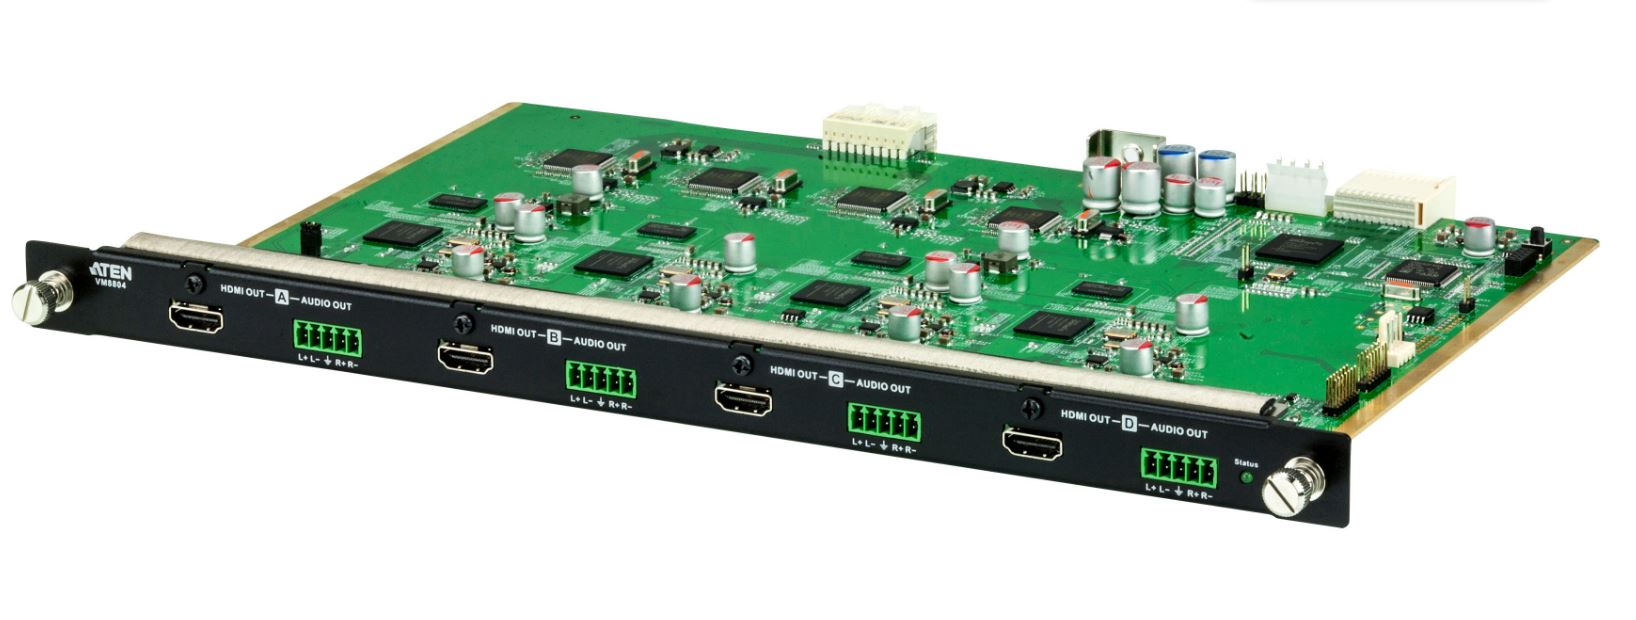 Aten 4 Port HDMI Output Board for VM1600A/VM3200 (PROJECT)